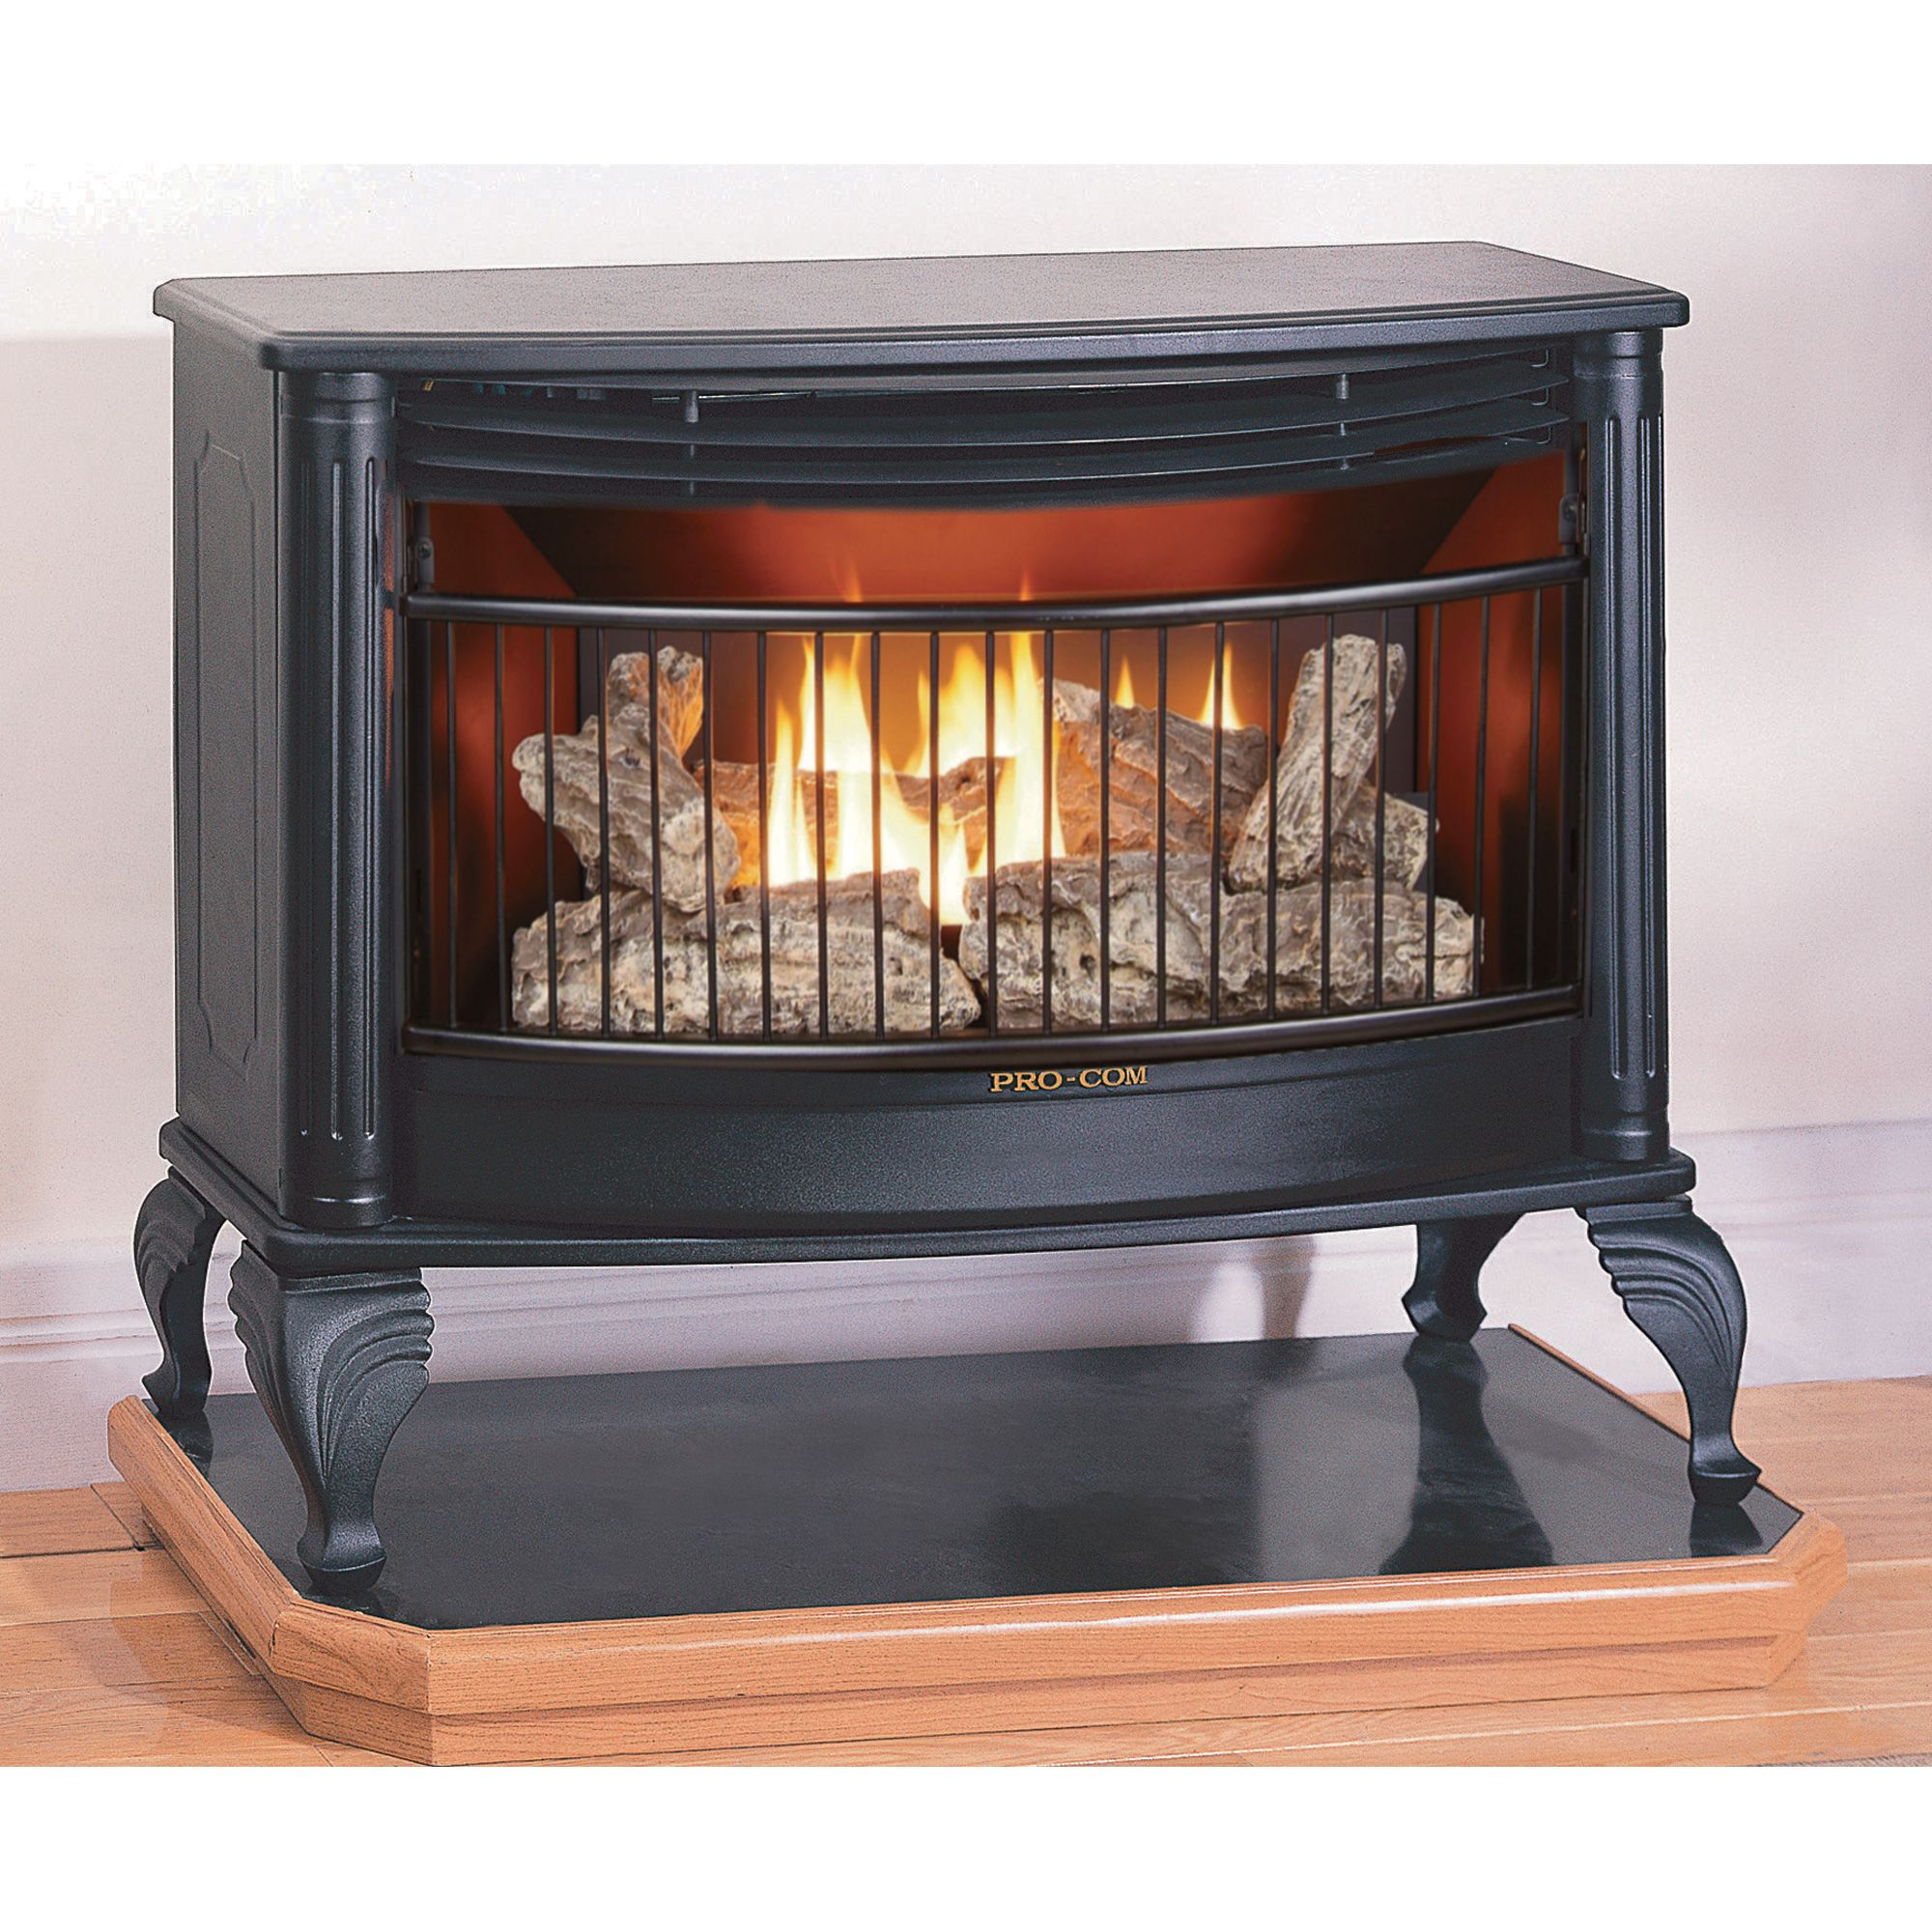 Btu Gas Fireplace Procom Dual Fuel Stove 25 000 Btu Model Qd250t Dual Fuel